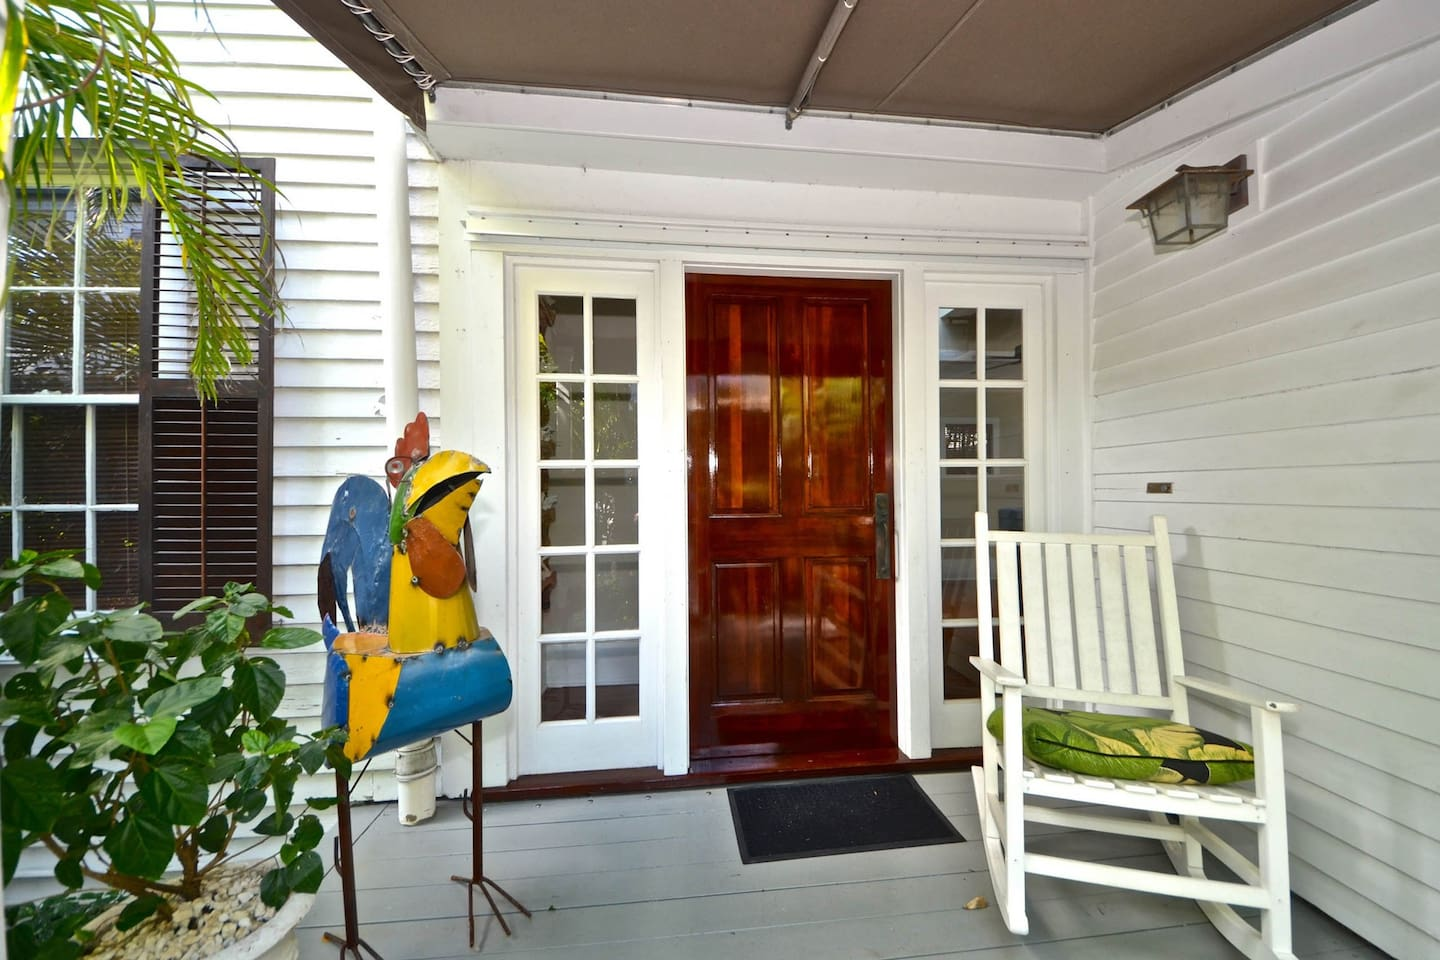 Welcoming home w/ private pool & covered porch - walk to dining & attractions